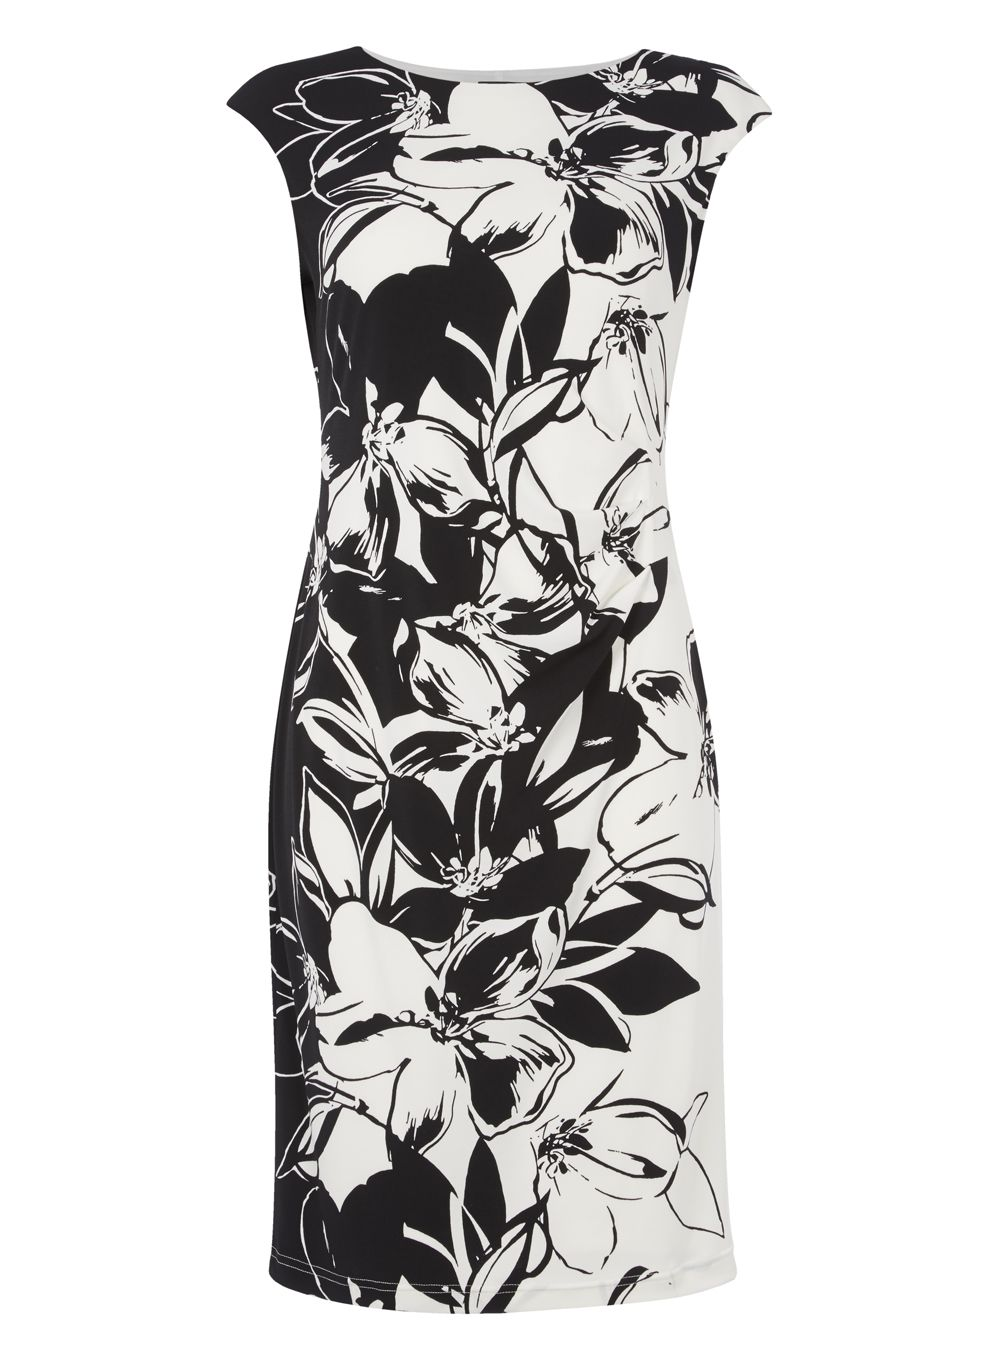 Roman Originals Floral Print Dress, Black